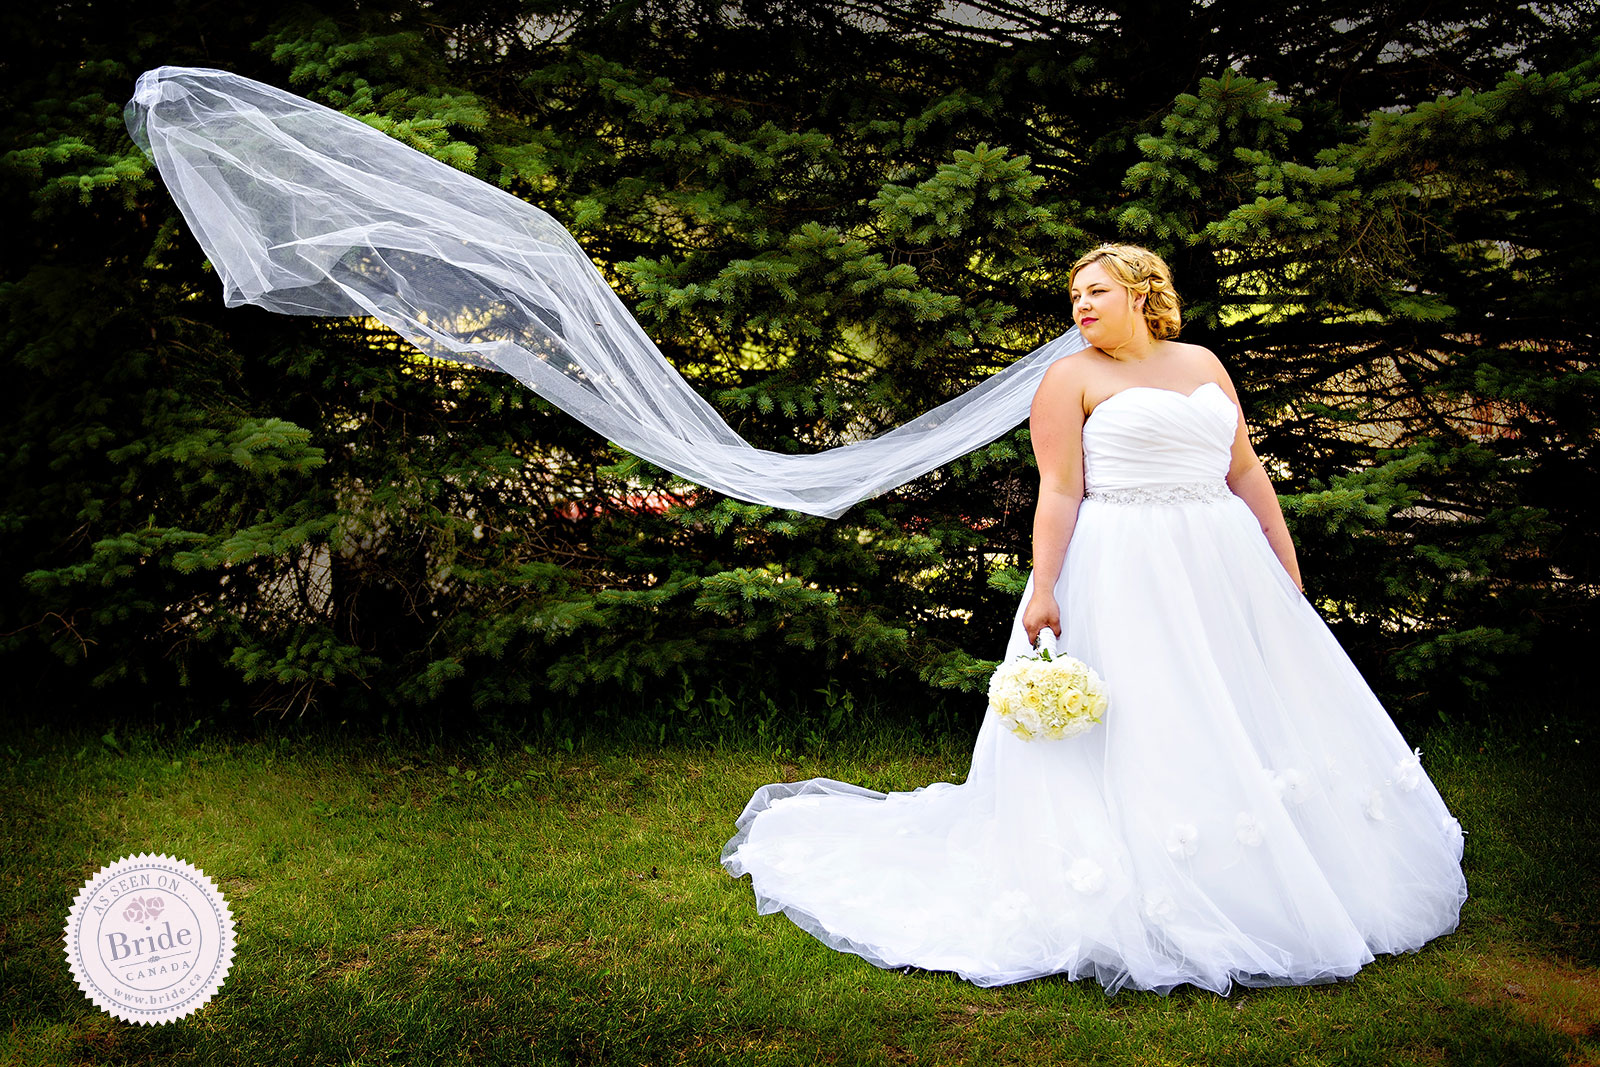 Wedding Dresses In Ontario Canada - Wedding Dresses In Jax